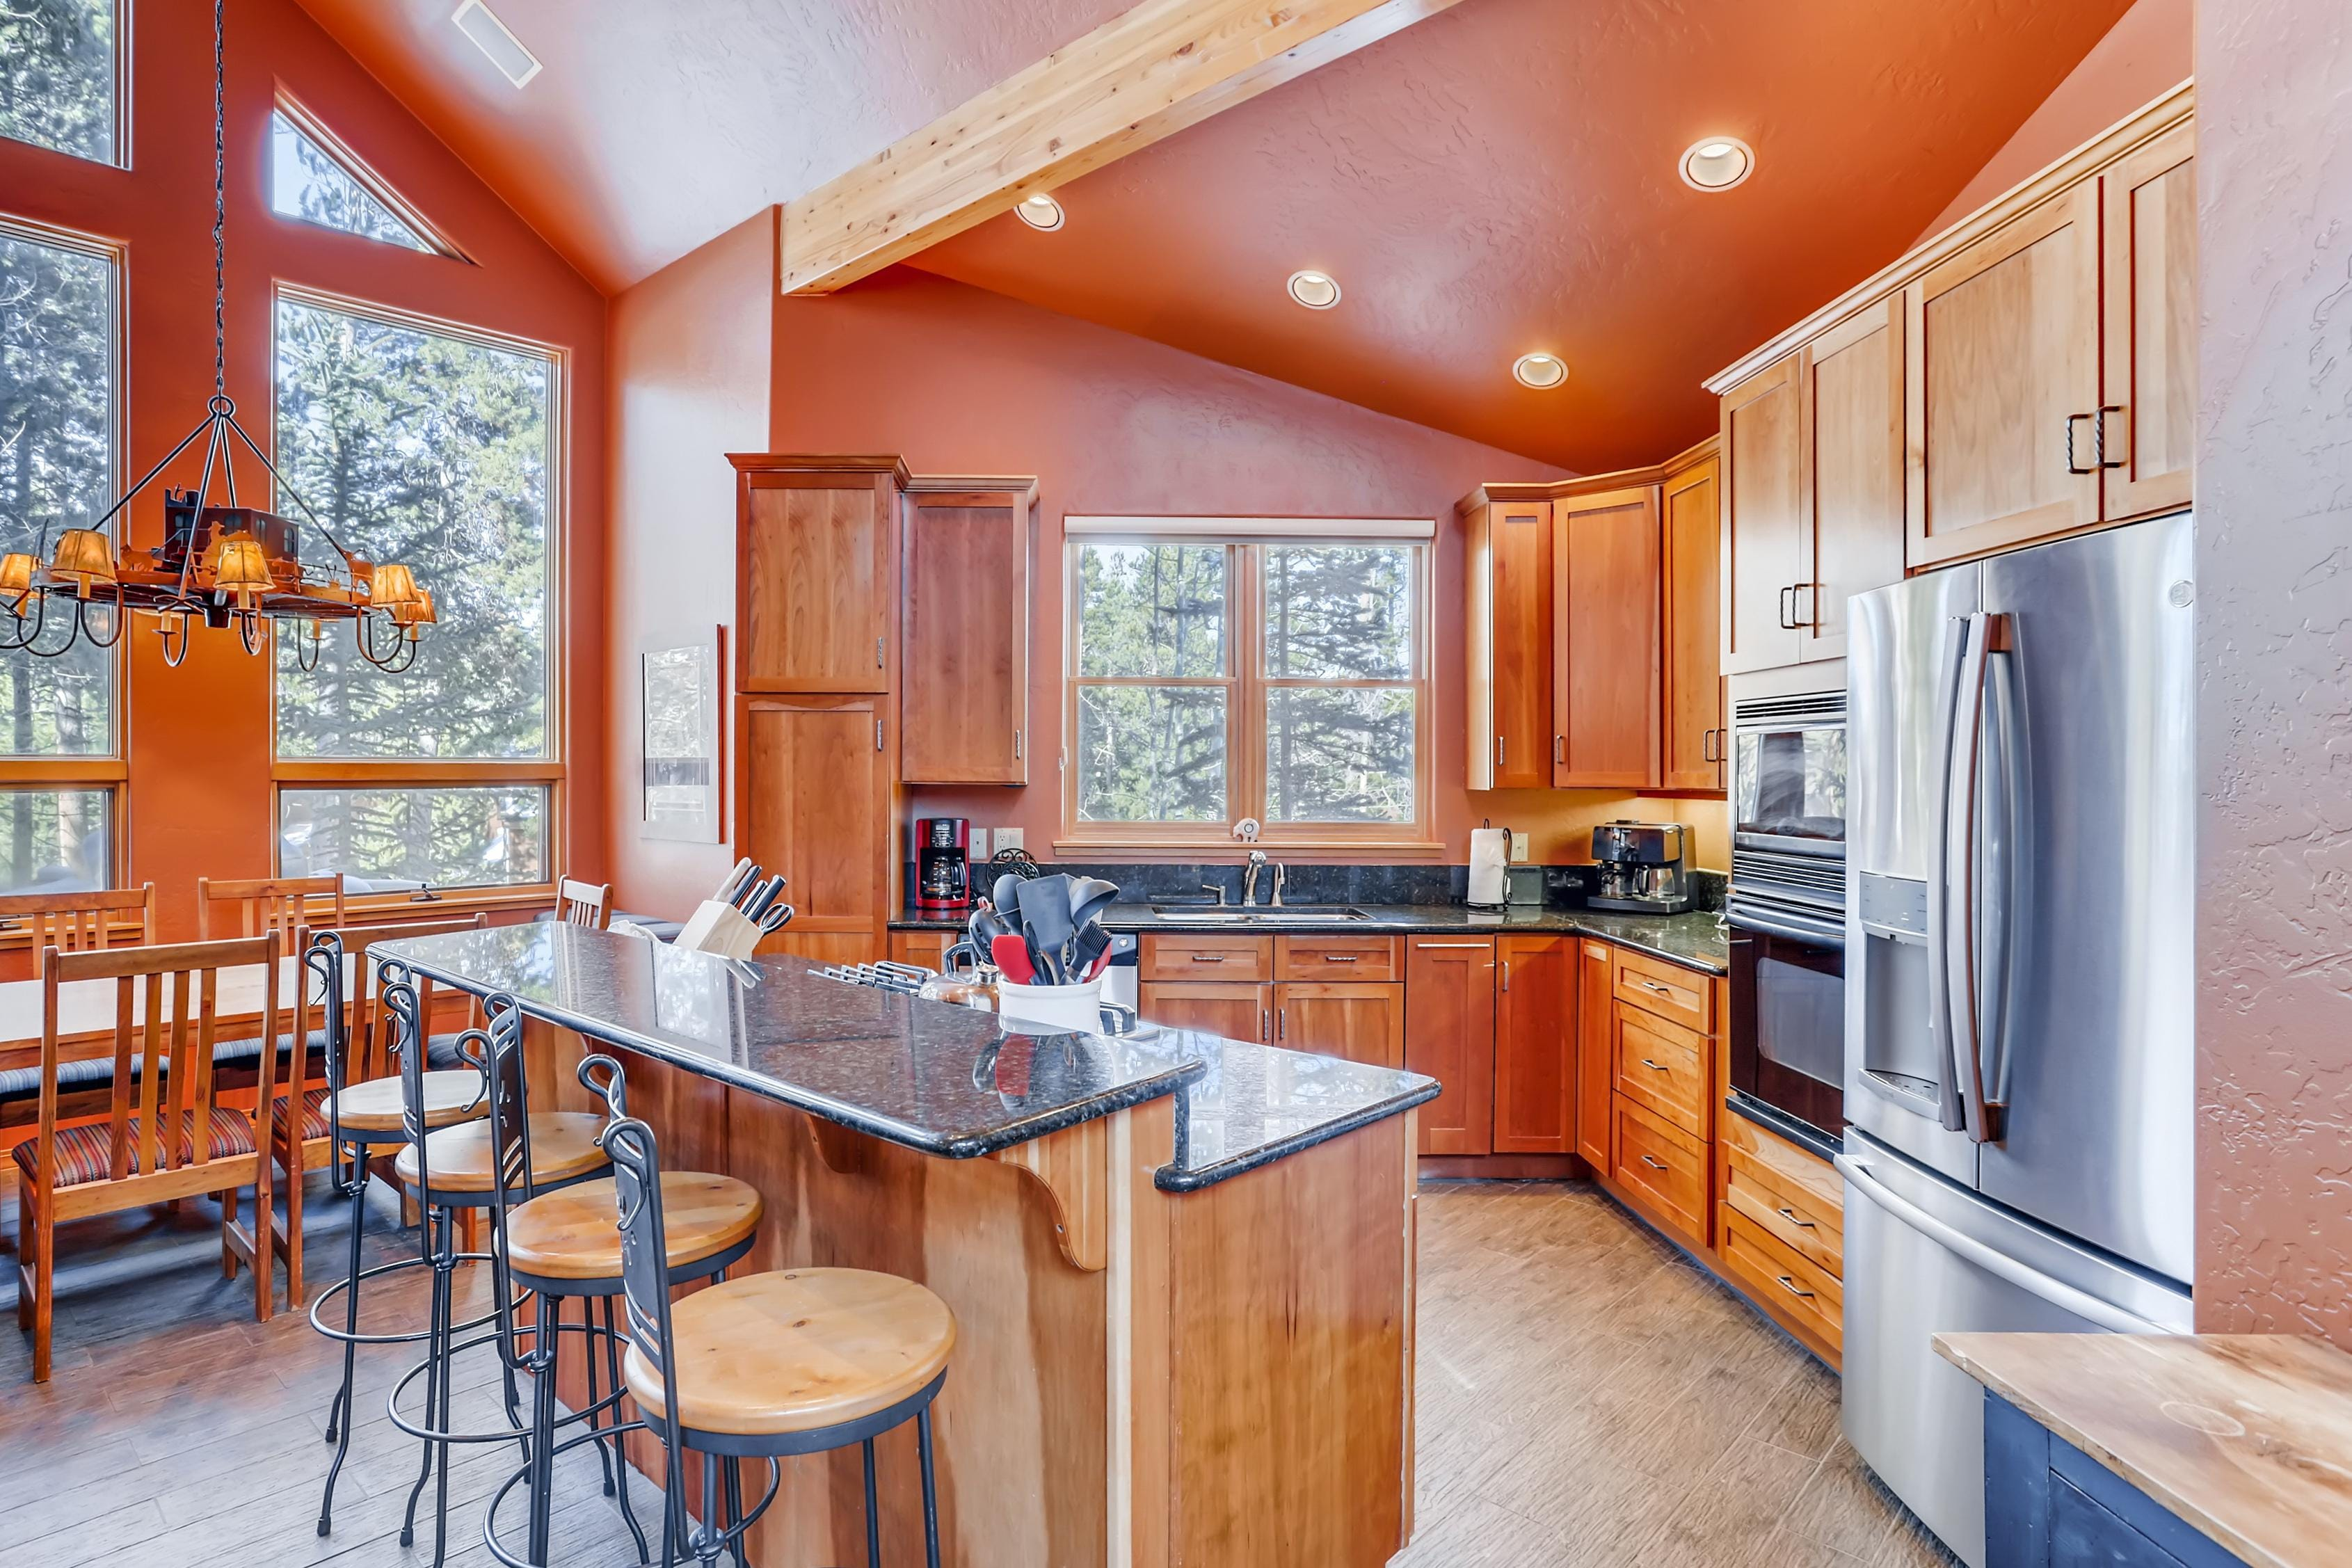 The chef in your group will appreciate the gourmet kitchen, outfitted with stainless steel appliances.